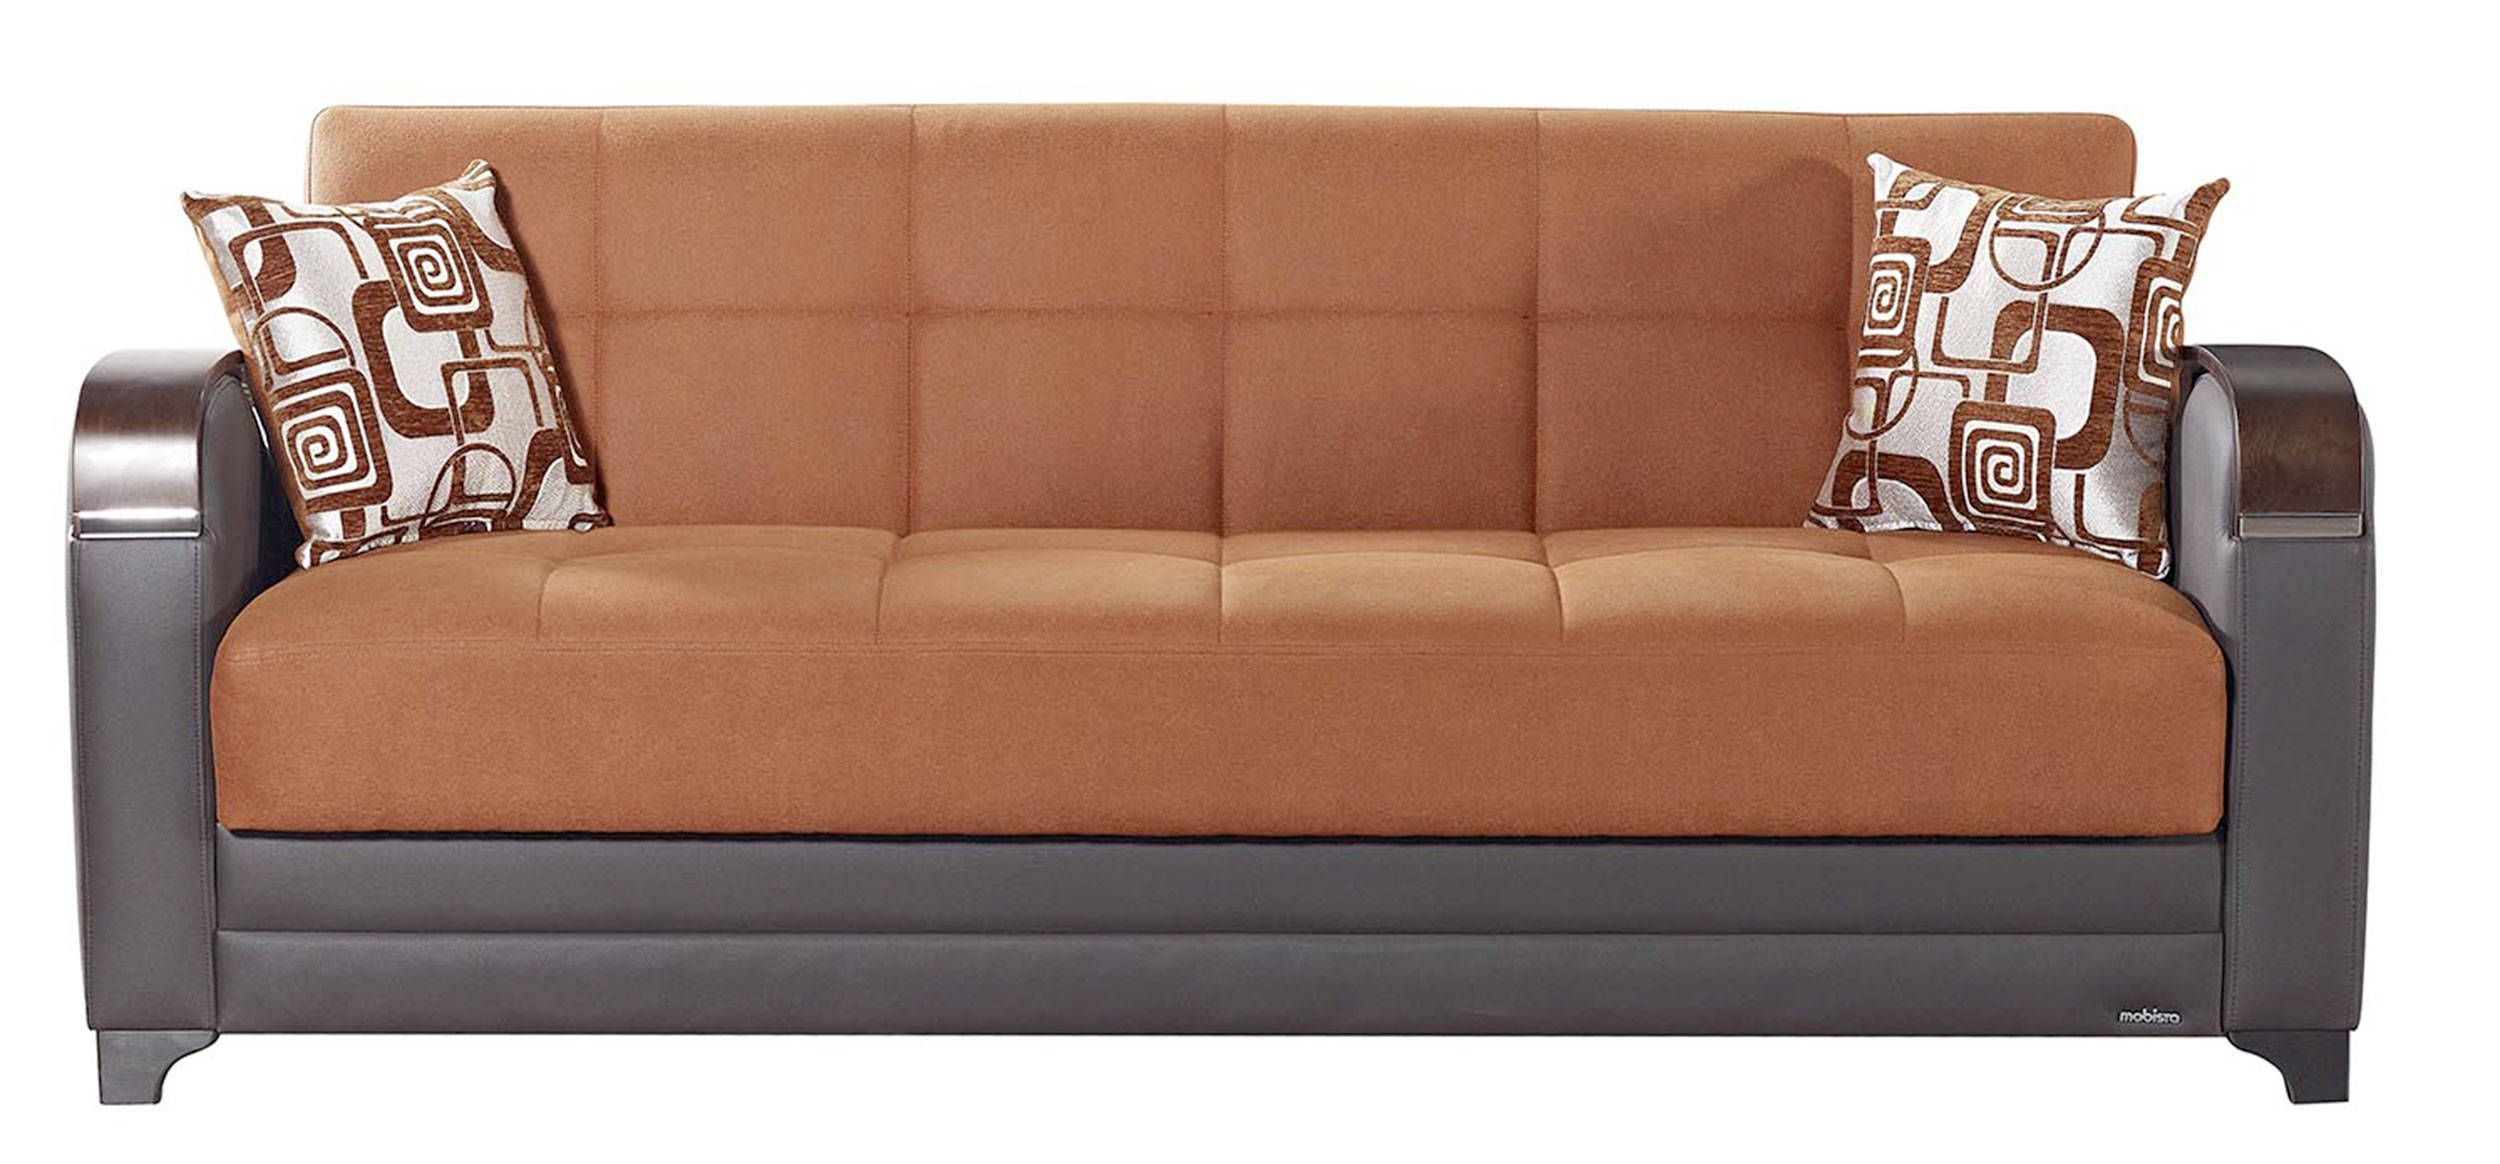 Etro Vintage Terra Cotta Fabric PU MDF Plywood Storage Sofa Bed